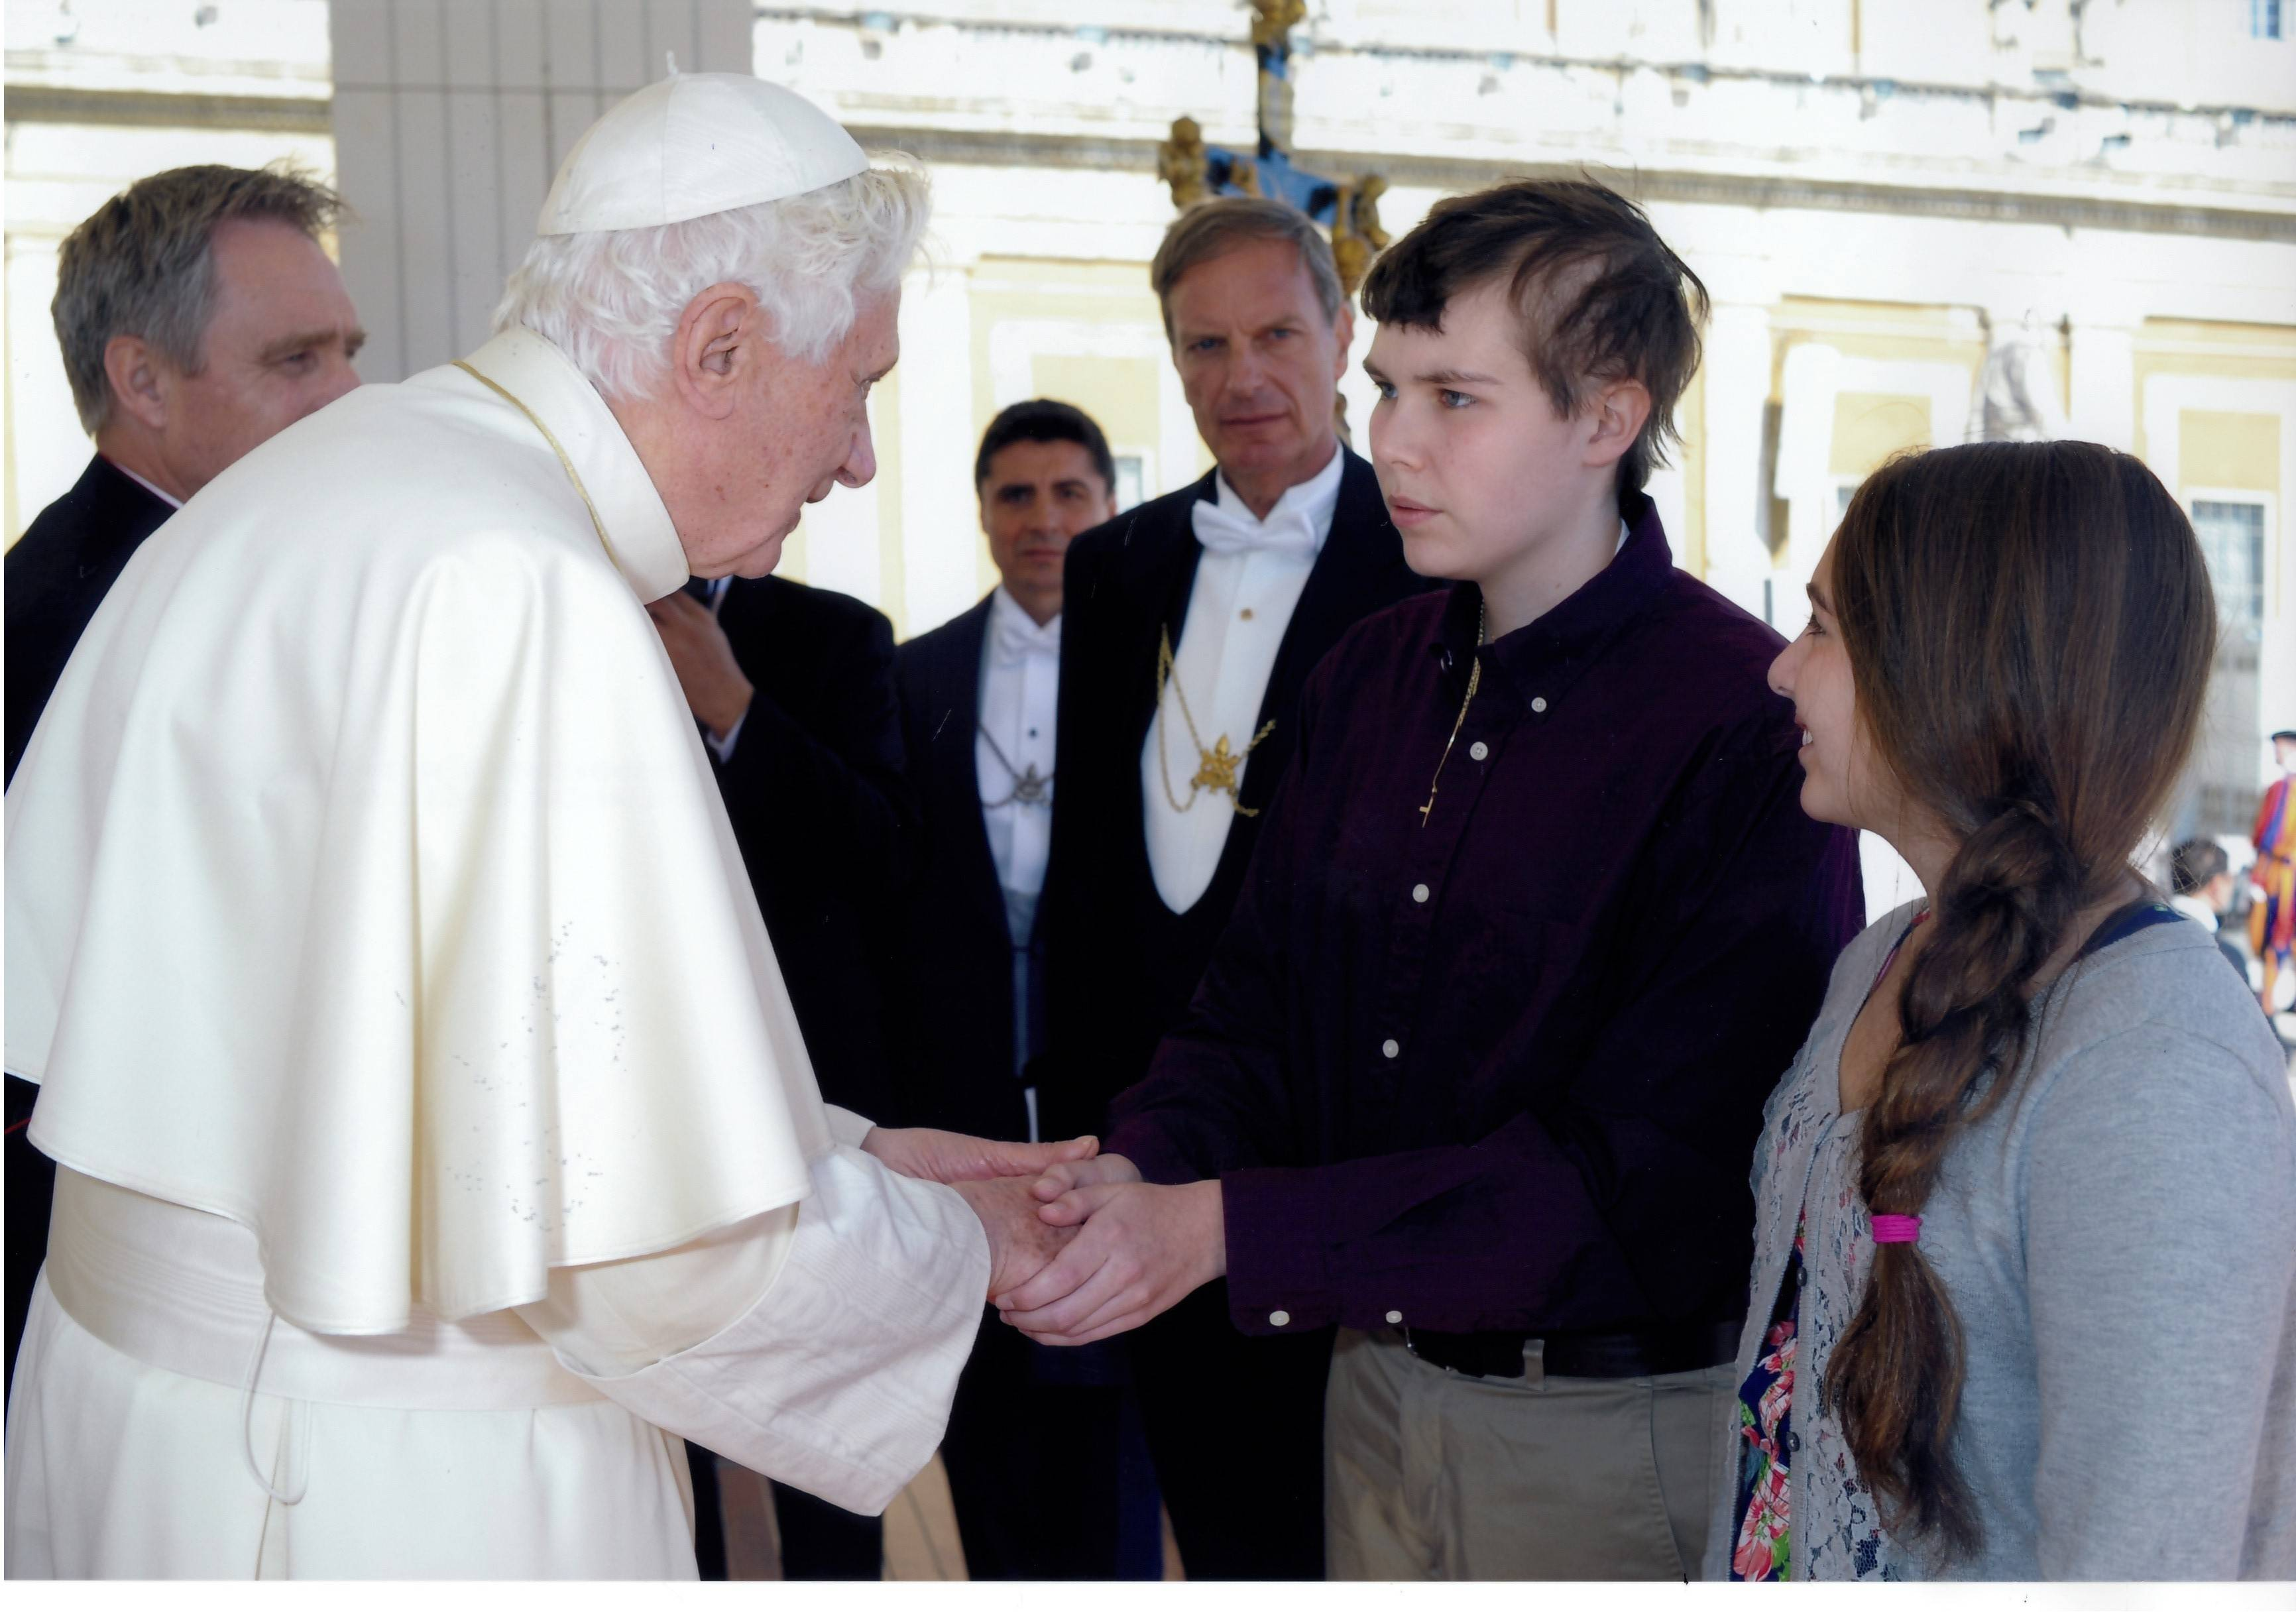 Andrew Zint is blessed by Pope Benedict on a 2011 trip to Rome with his family